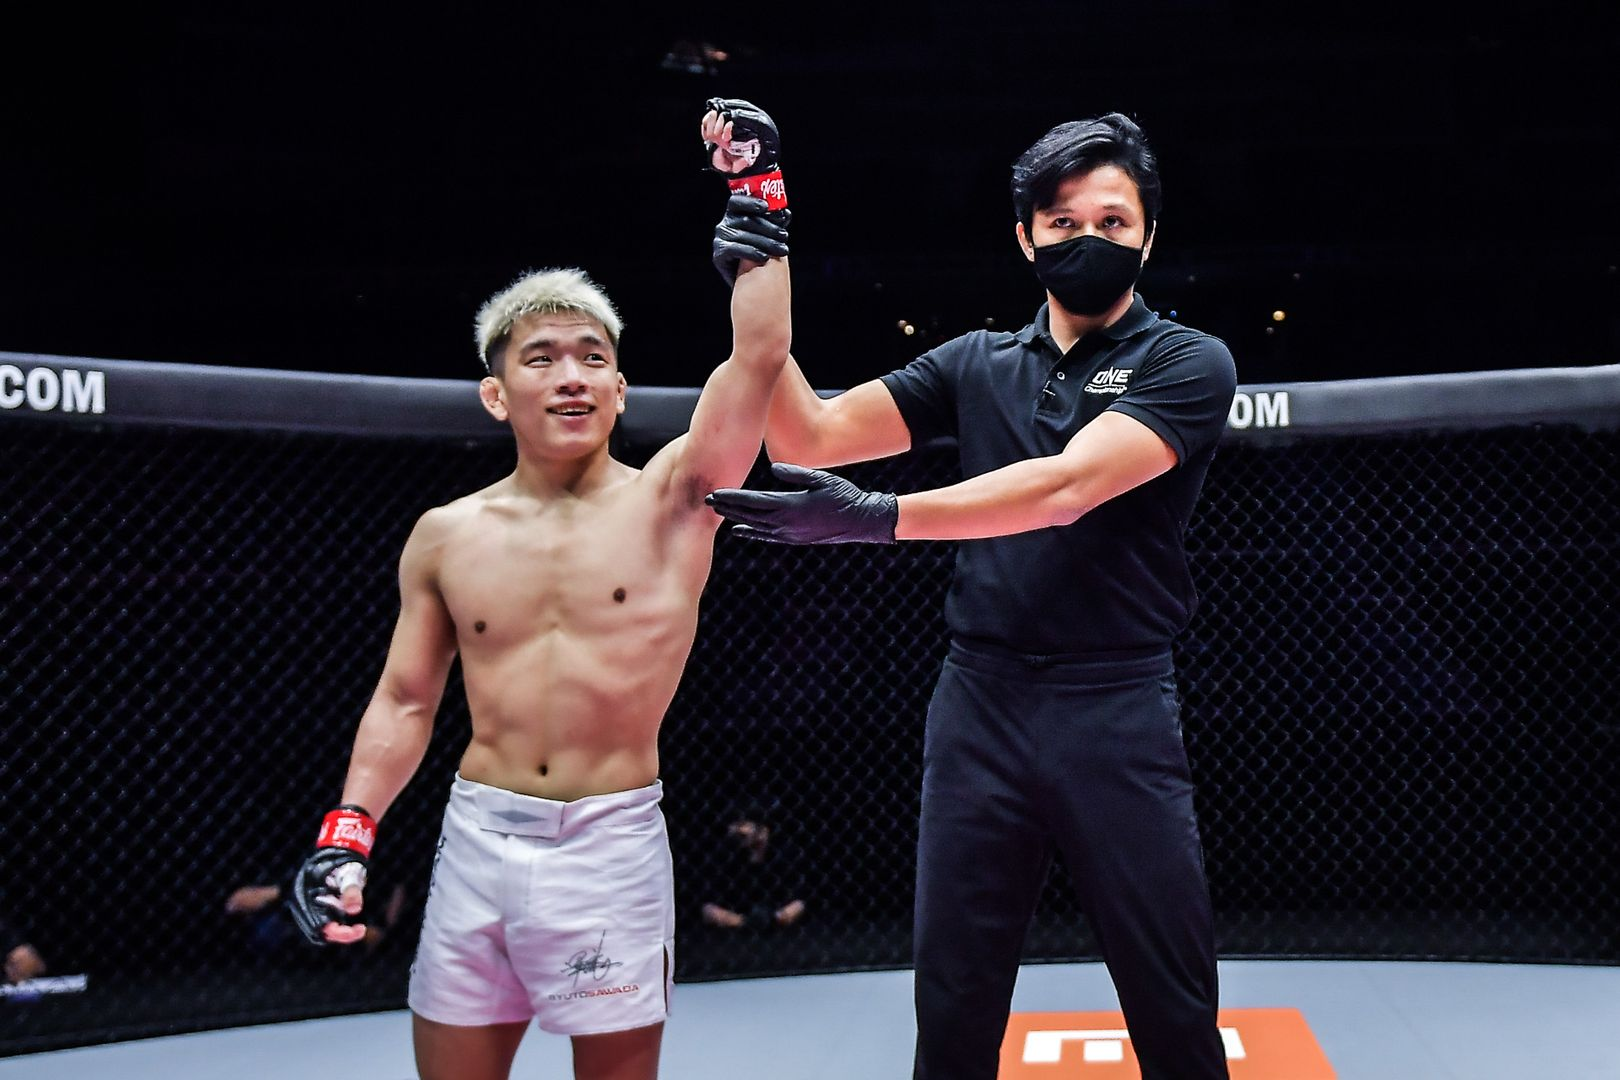 Photos from Ryuto Sawada and Robin Catalan's MMA fight at ONE: UNBREAKABLE III in 5 February 2021